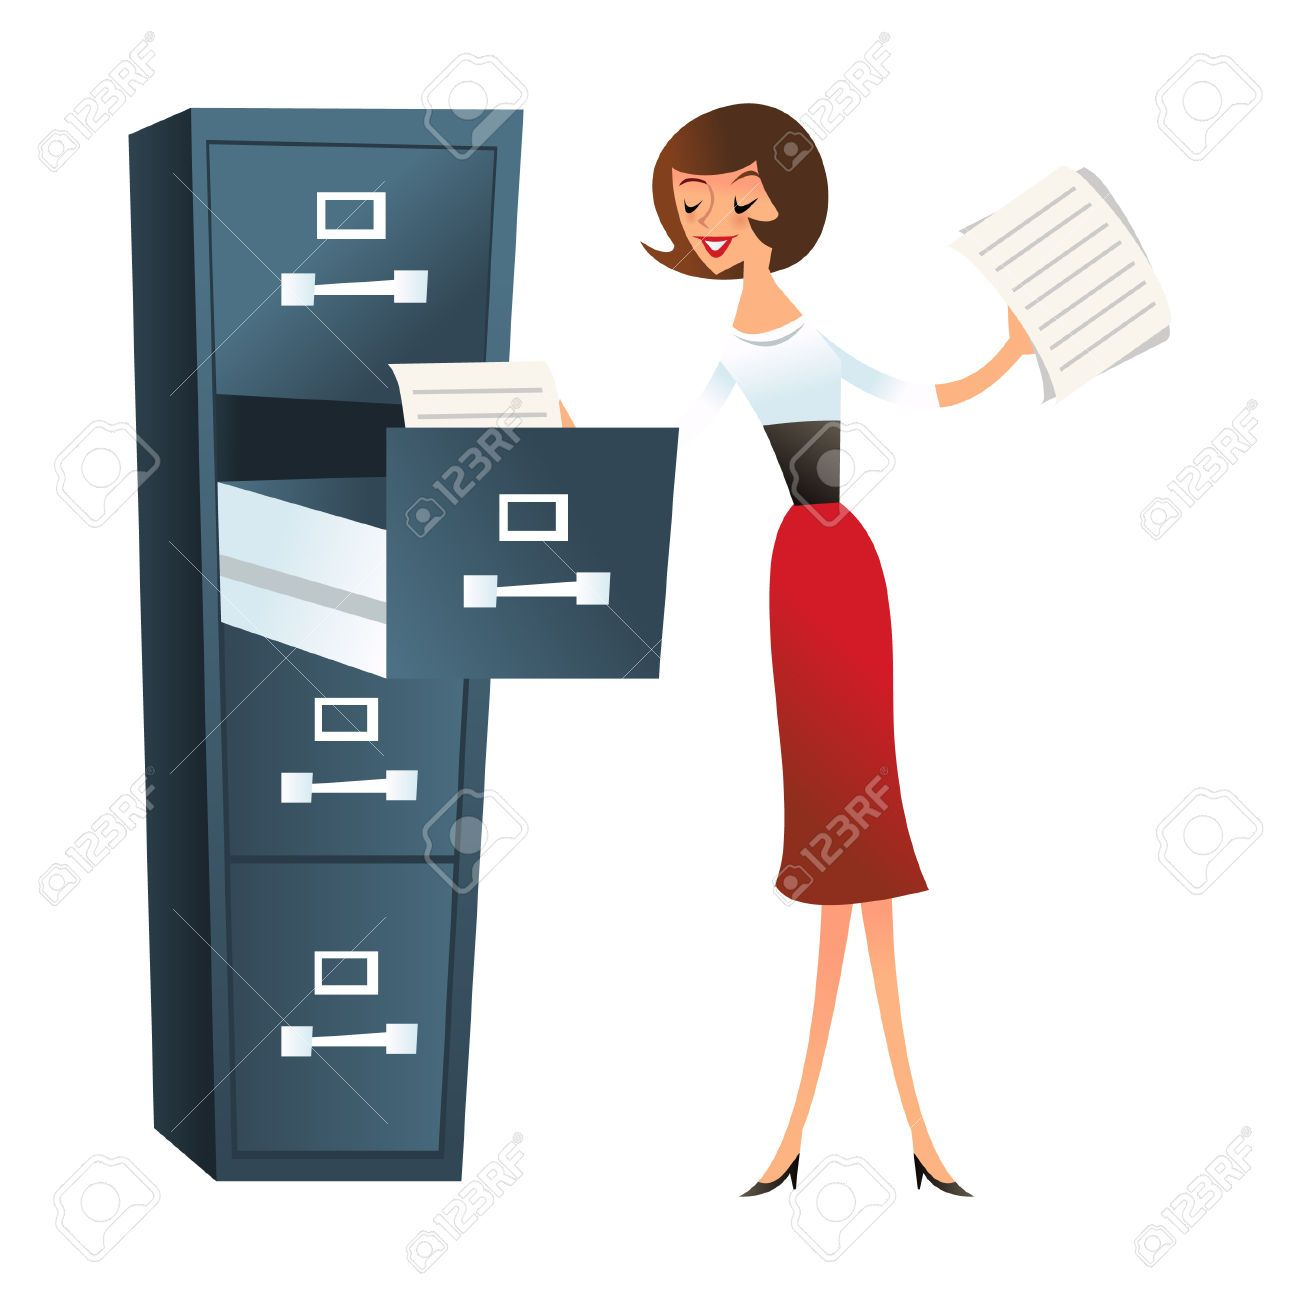 File Cabinet Clip Art: Filing Cabinet: A Illustration Of Happy Secretary Girl